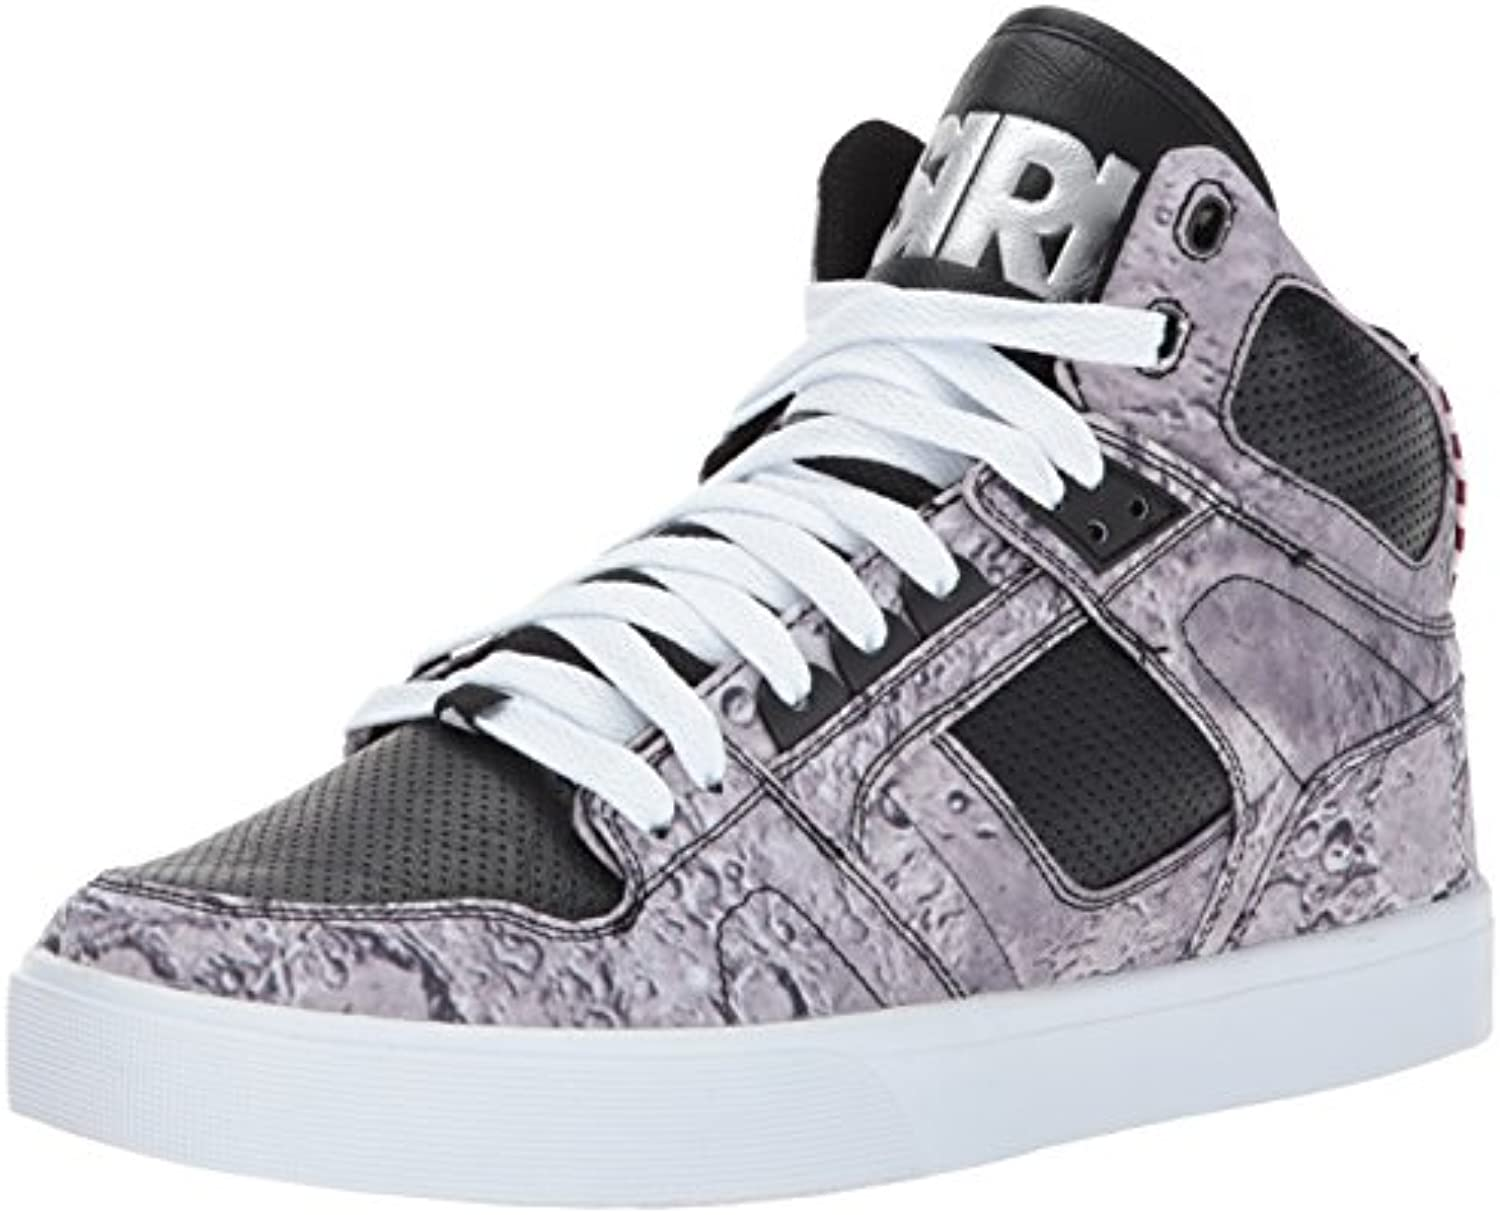 Zapatos Osiris NYC83 Vulc Lunar-Eclipse  -